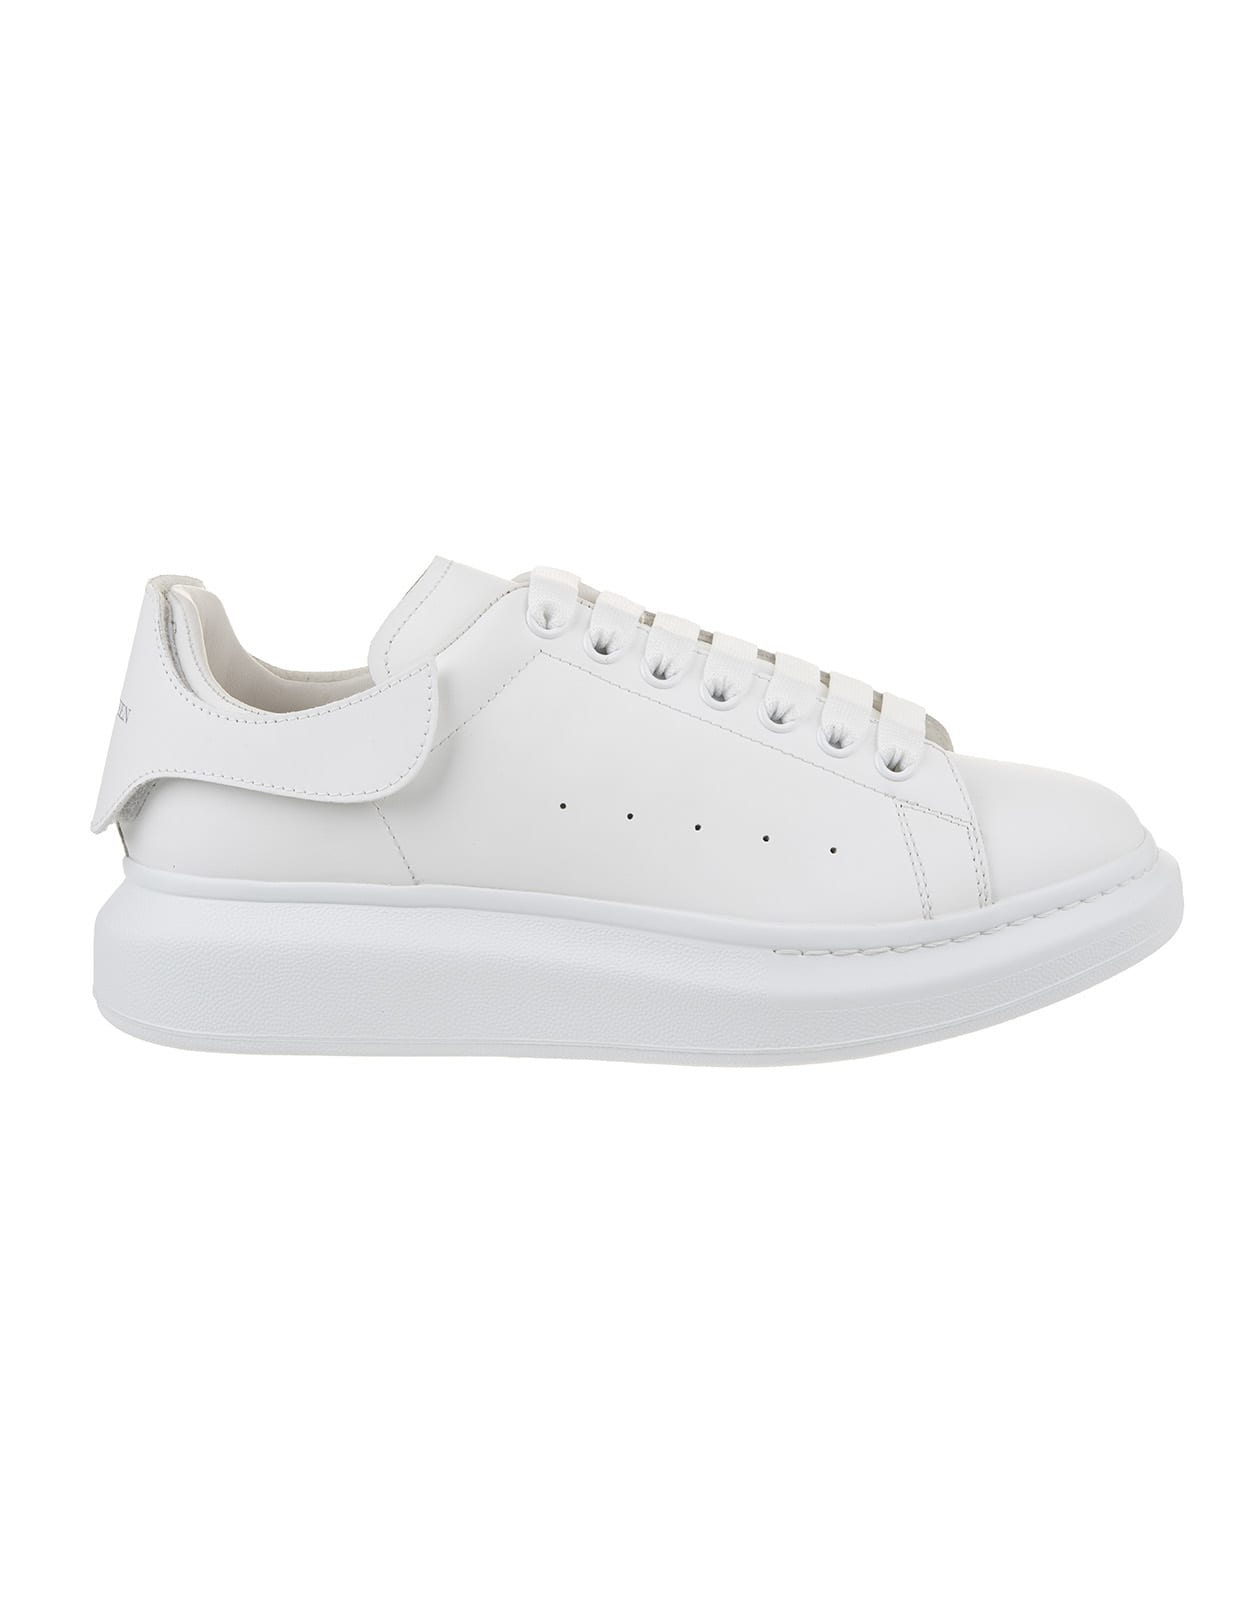 Man White Oversize Sneakers With Interchangeable Inserts